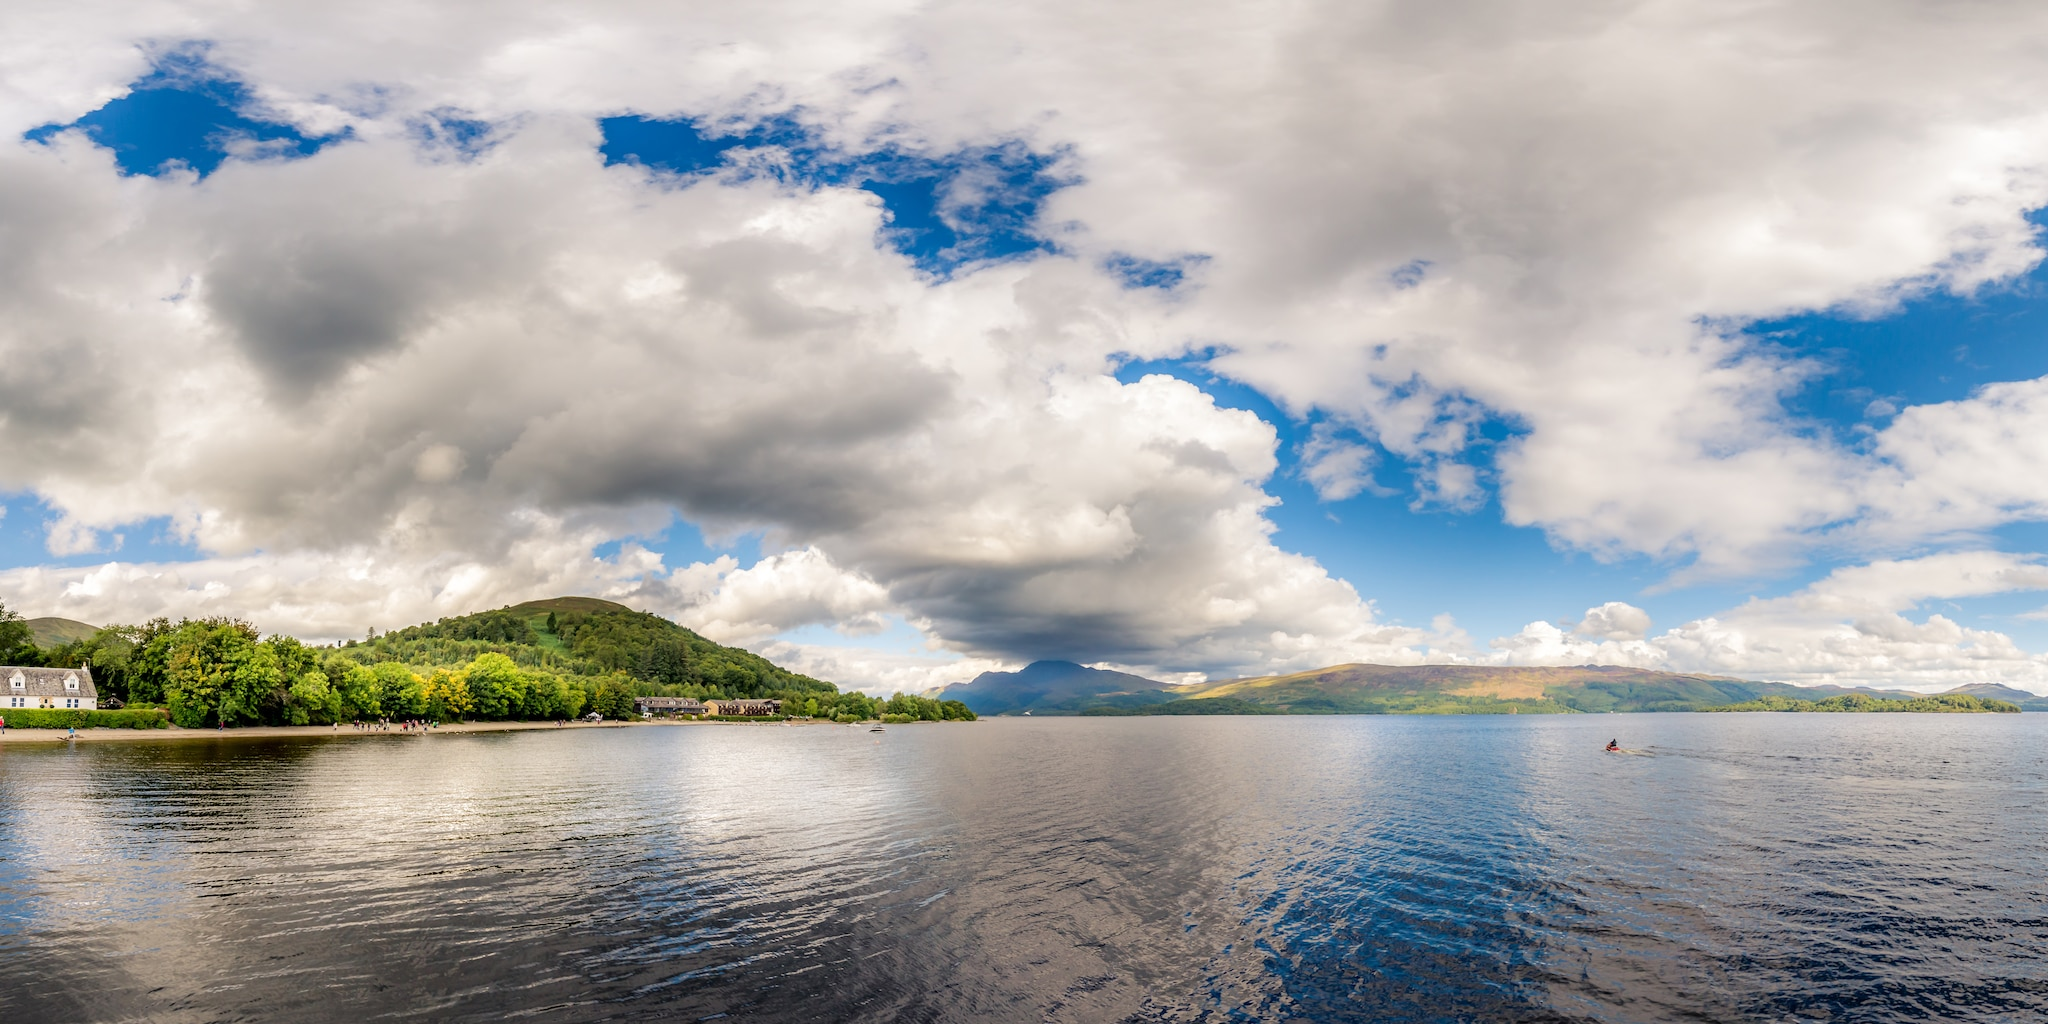 Cumulus clouds lie low over Loch Ness, surrounded by forested bluffs